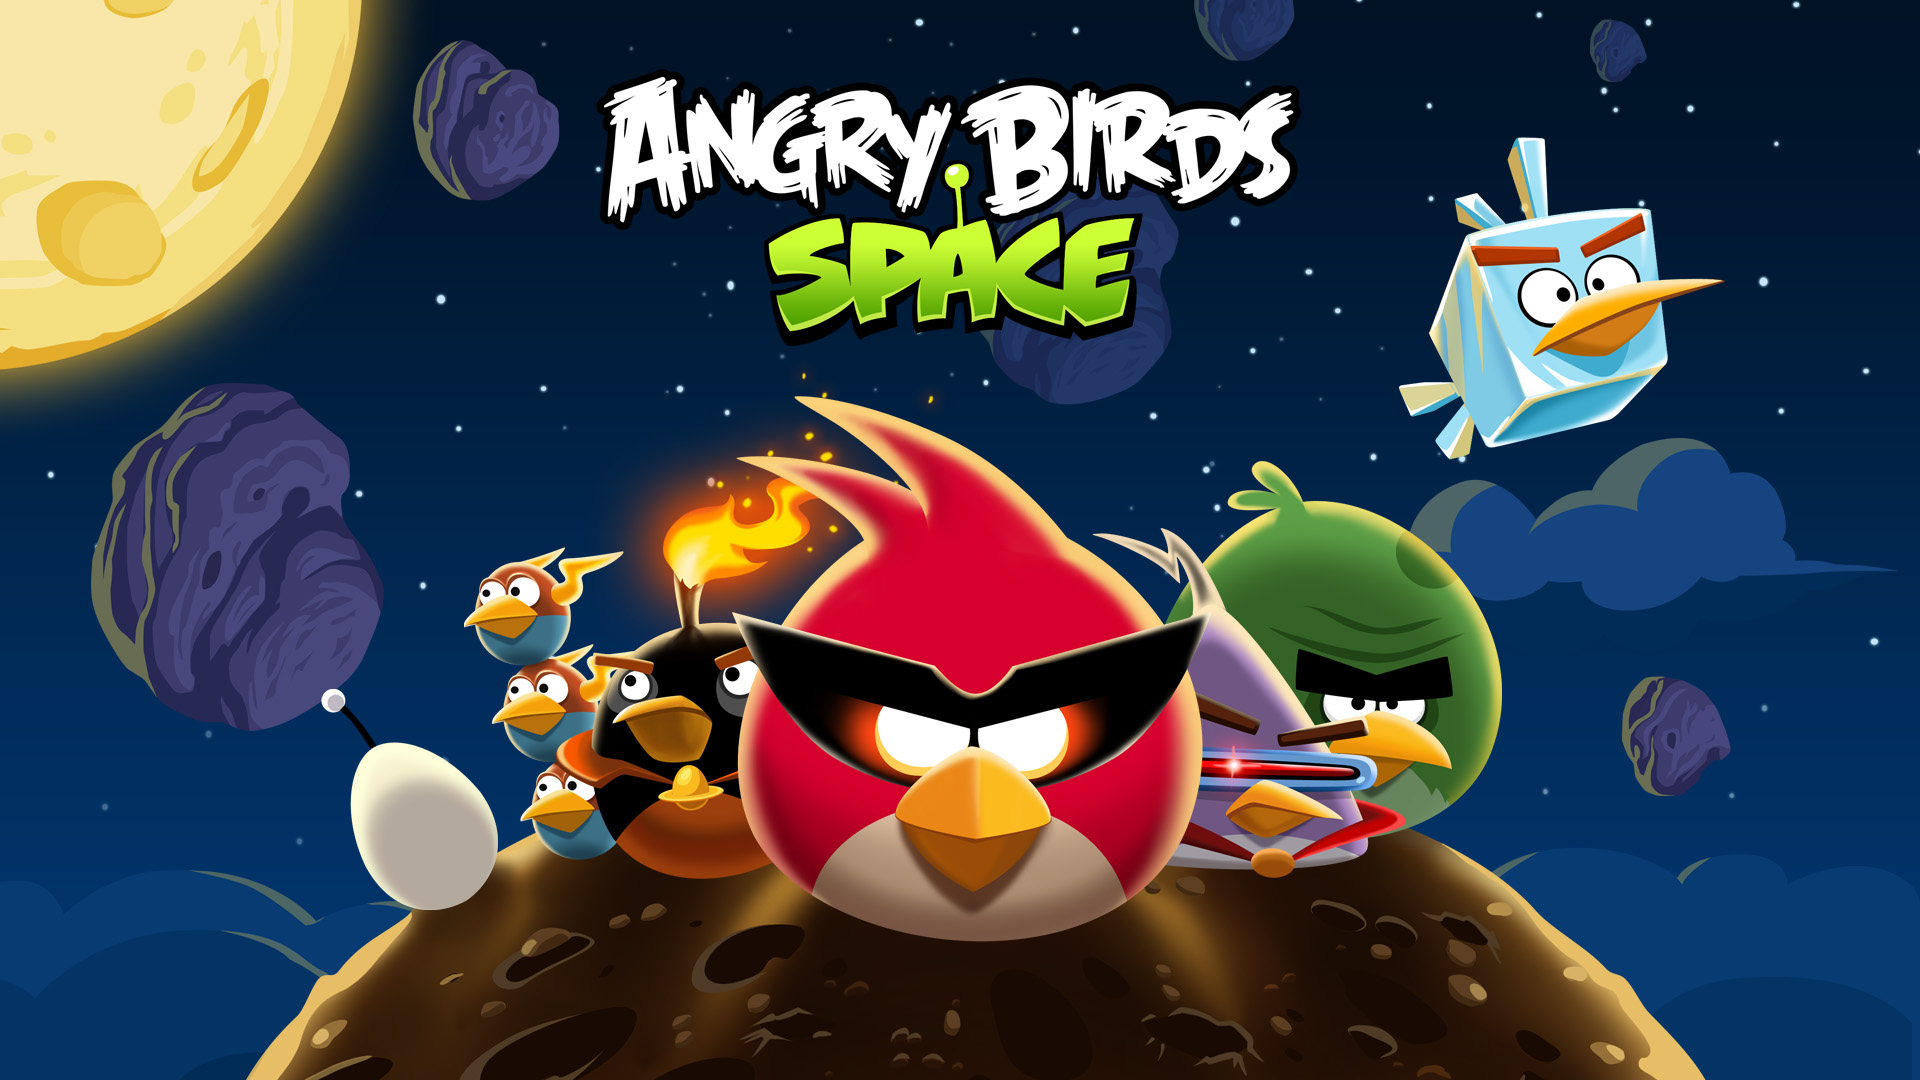 Get Angry Birds Space for free as part of a huge App Store sale